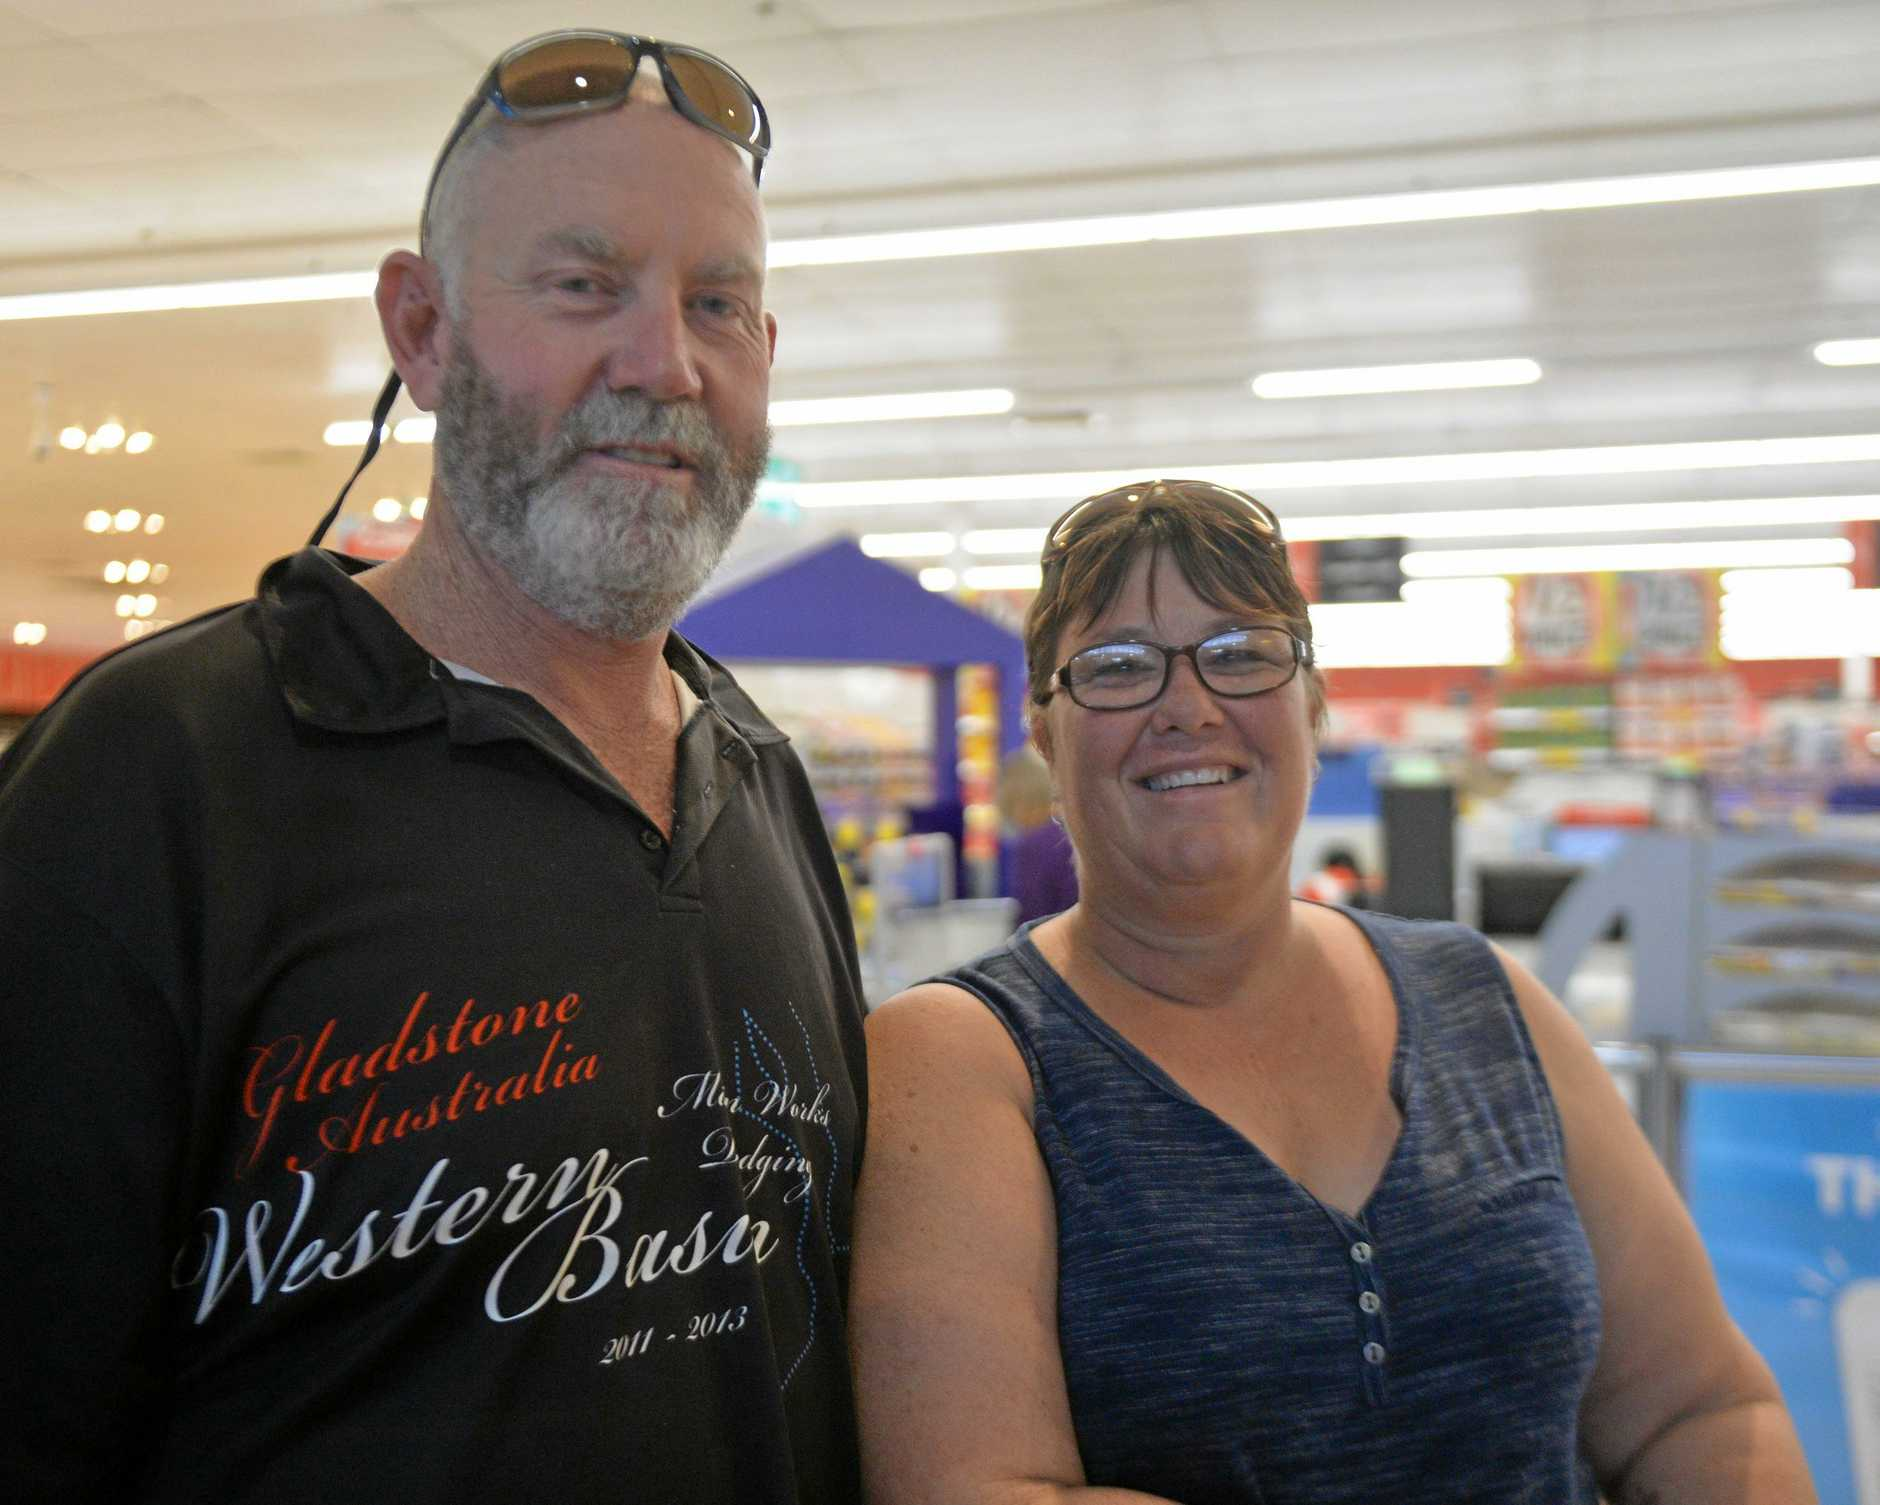 At the Sydney Street Coles, Ray Smith and Jodie Smith said they chose their grocery stores for convenience. Mr Smith said they usually visit the shop